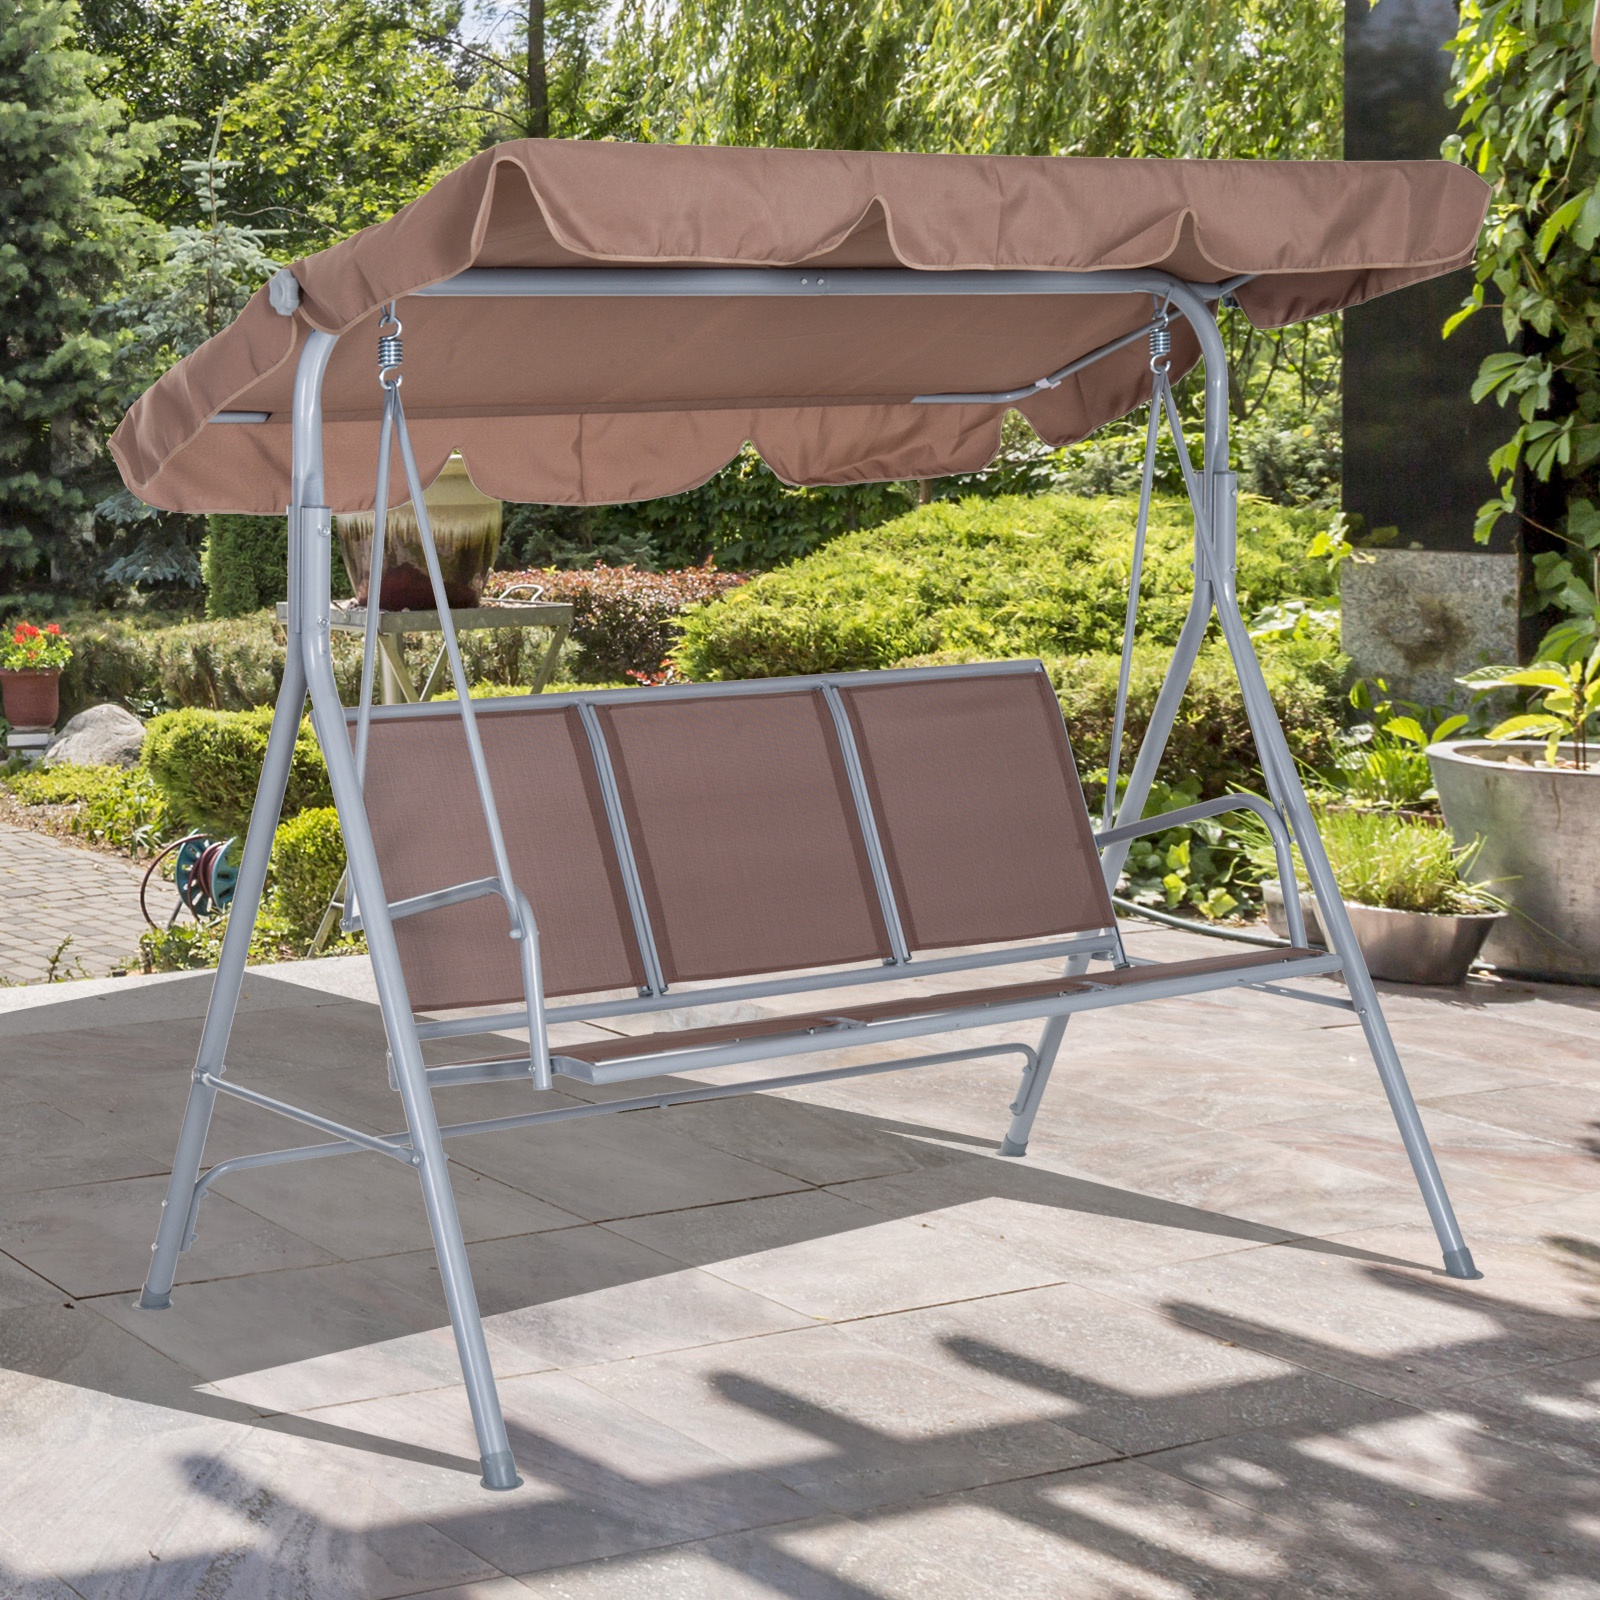 Outsunny A Frame 3 Seater Outdoor Swing Chair Garden Hammock Porch Glider Bed Sling Seat W Canopy Cover Brown Patio Swing Hammock Aosom Canada